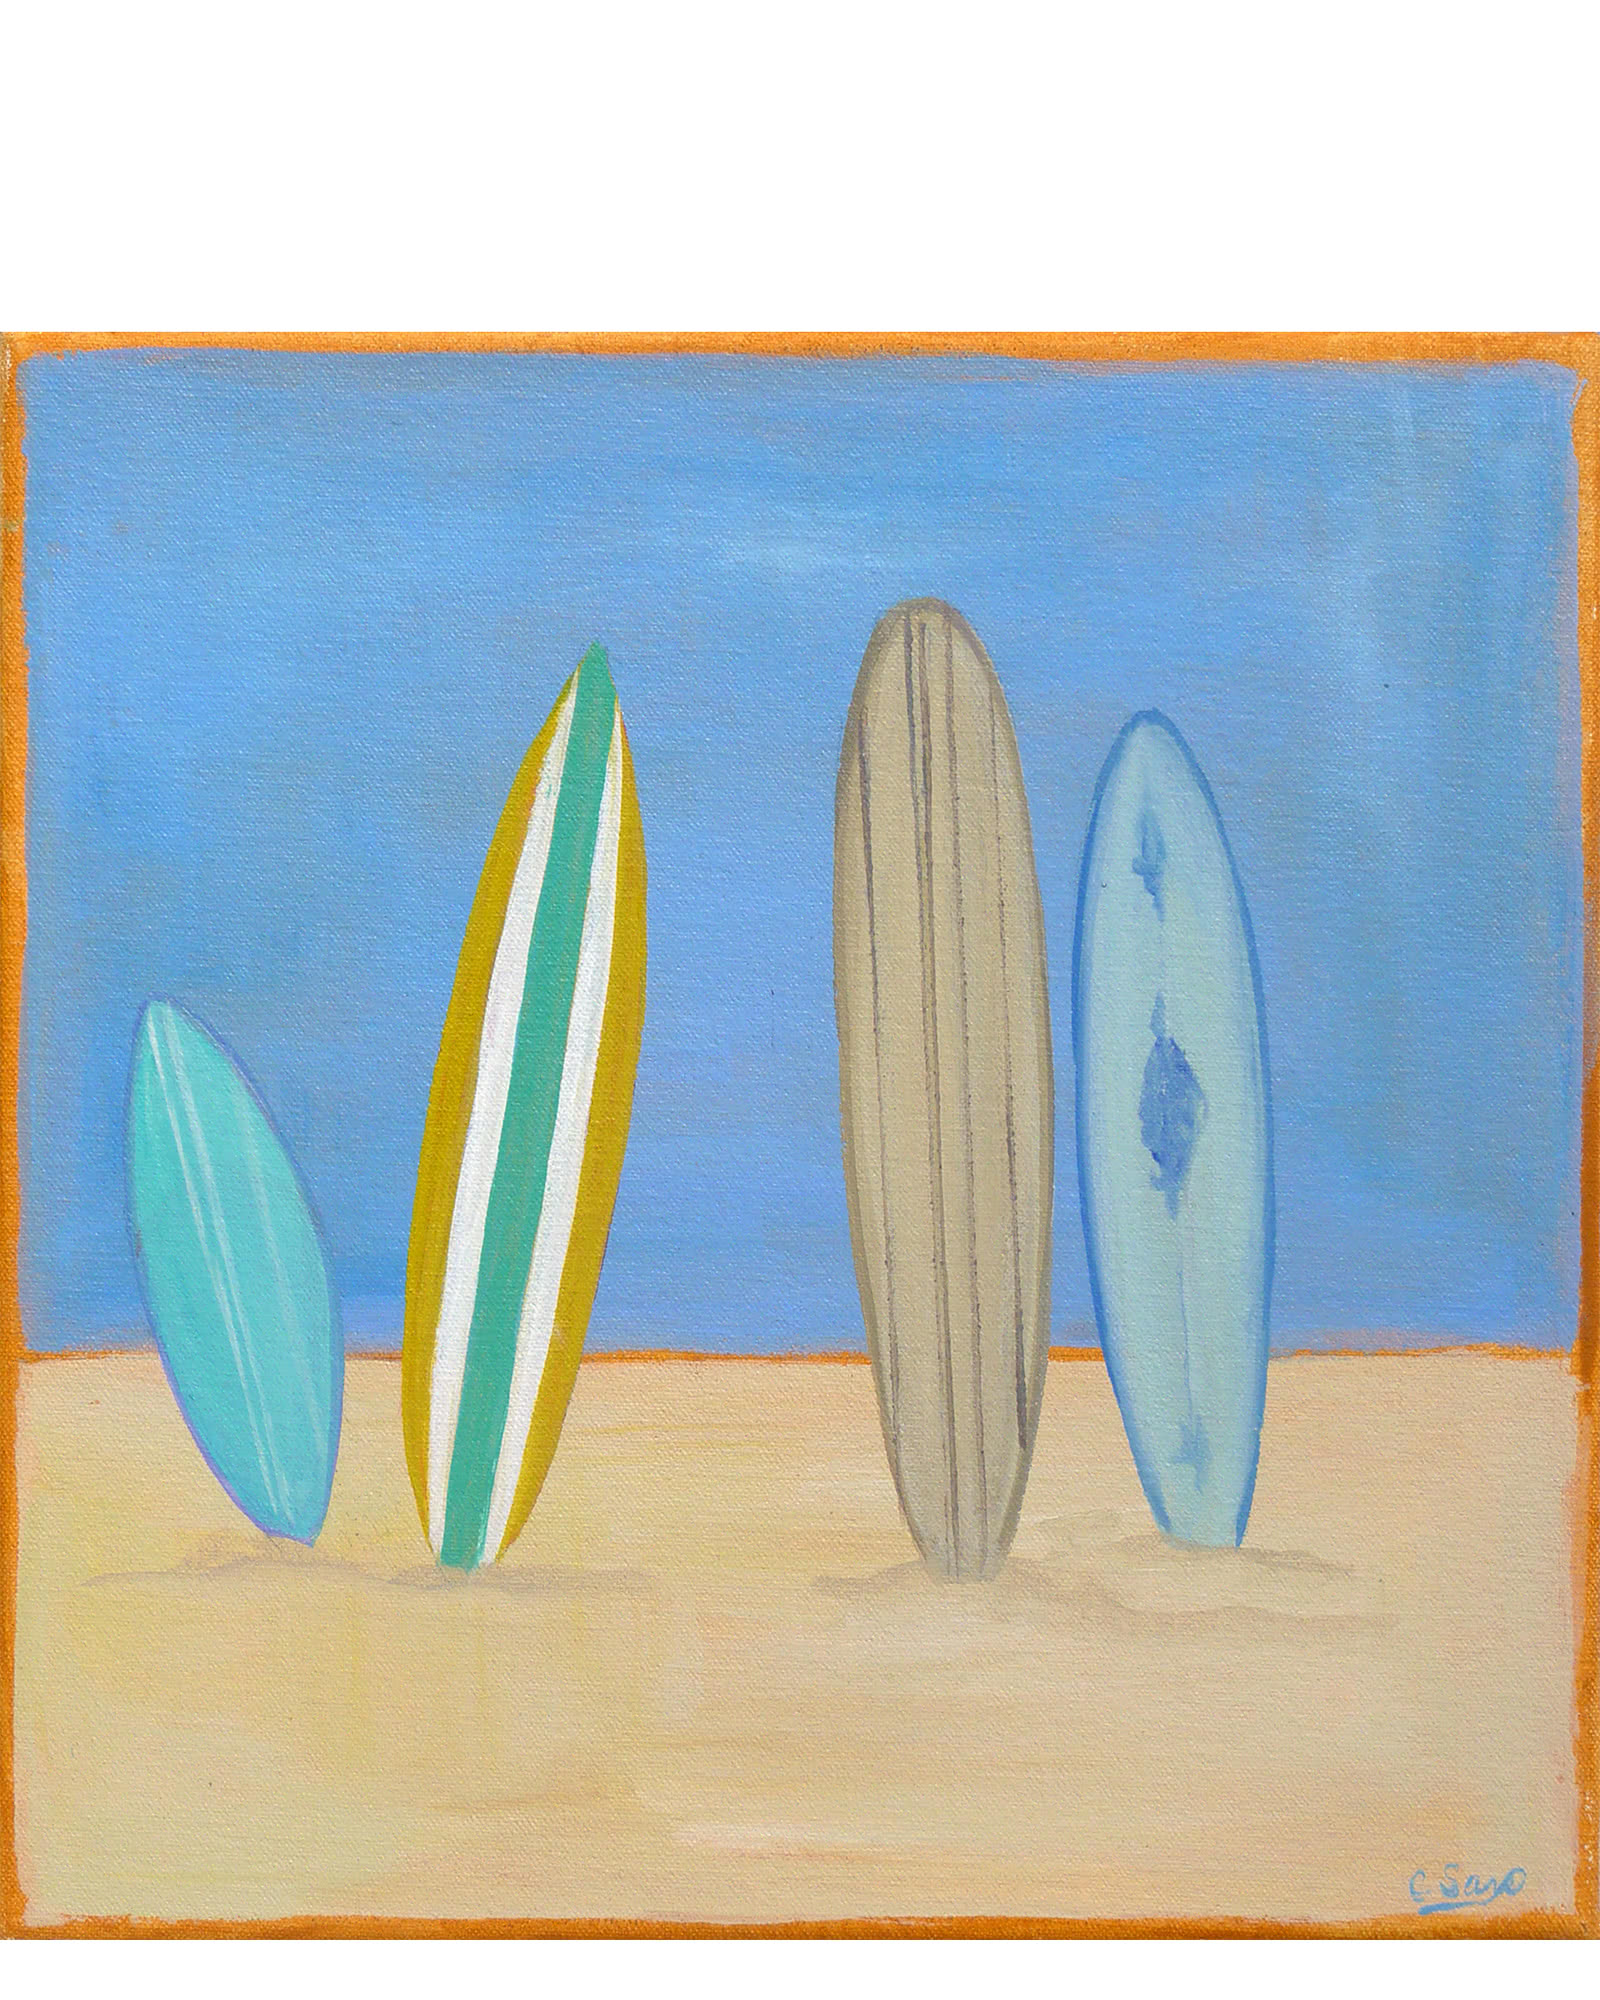 """Surfboards #2"" by Carol Saxe,"